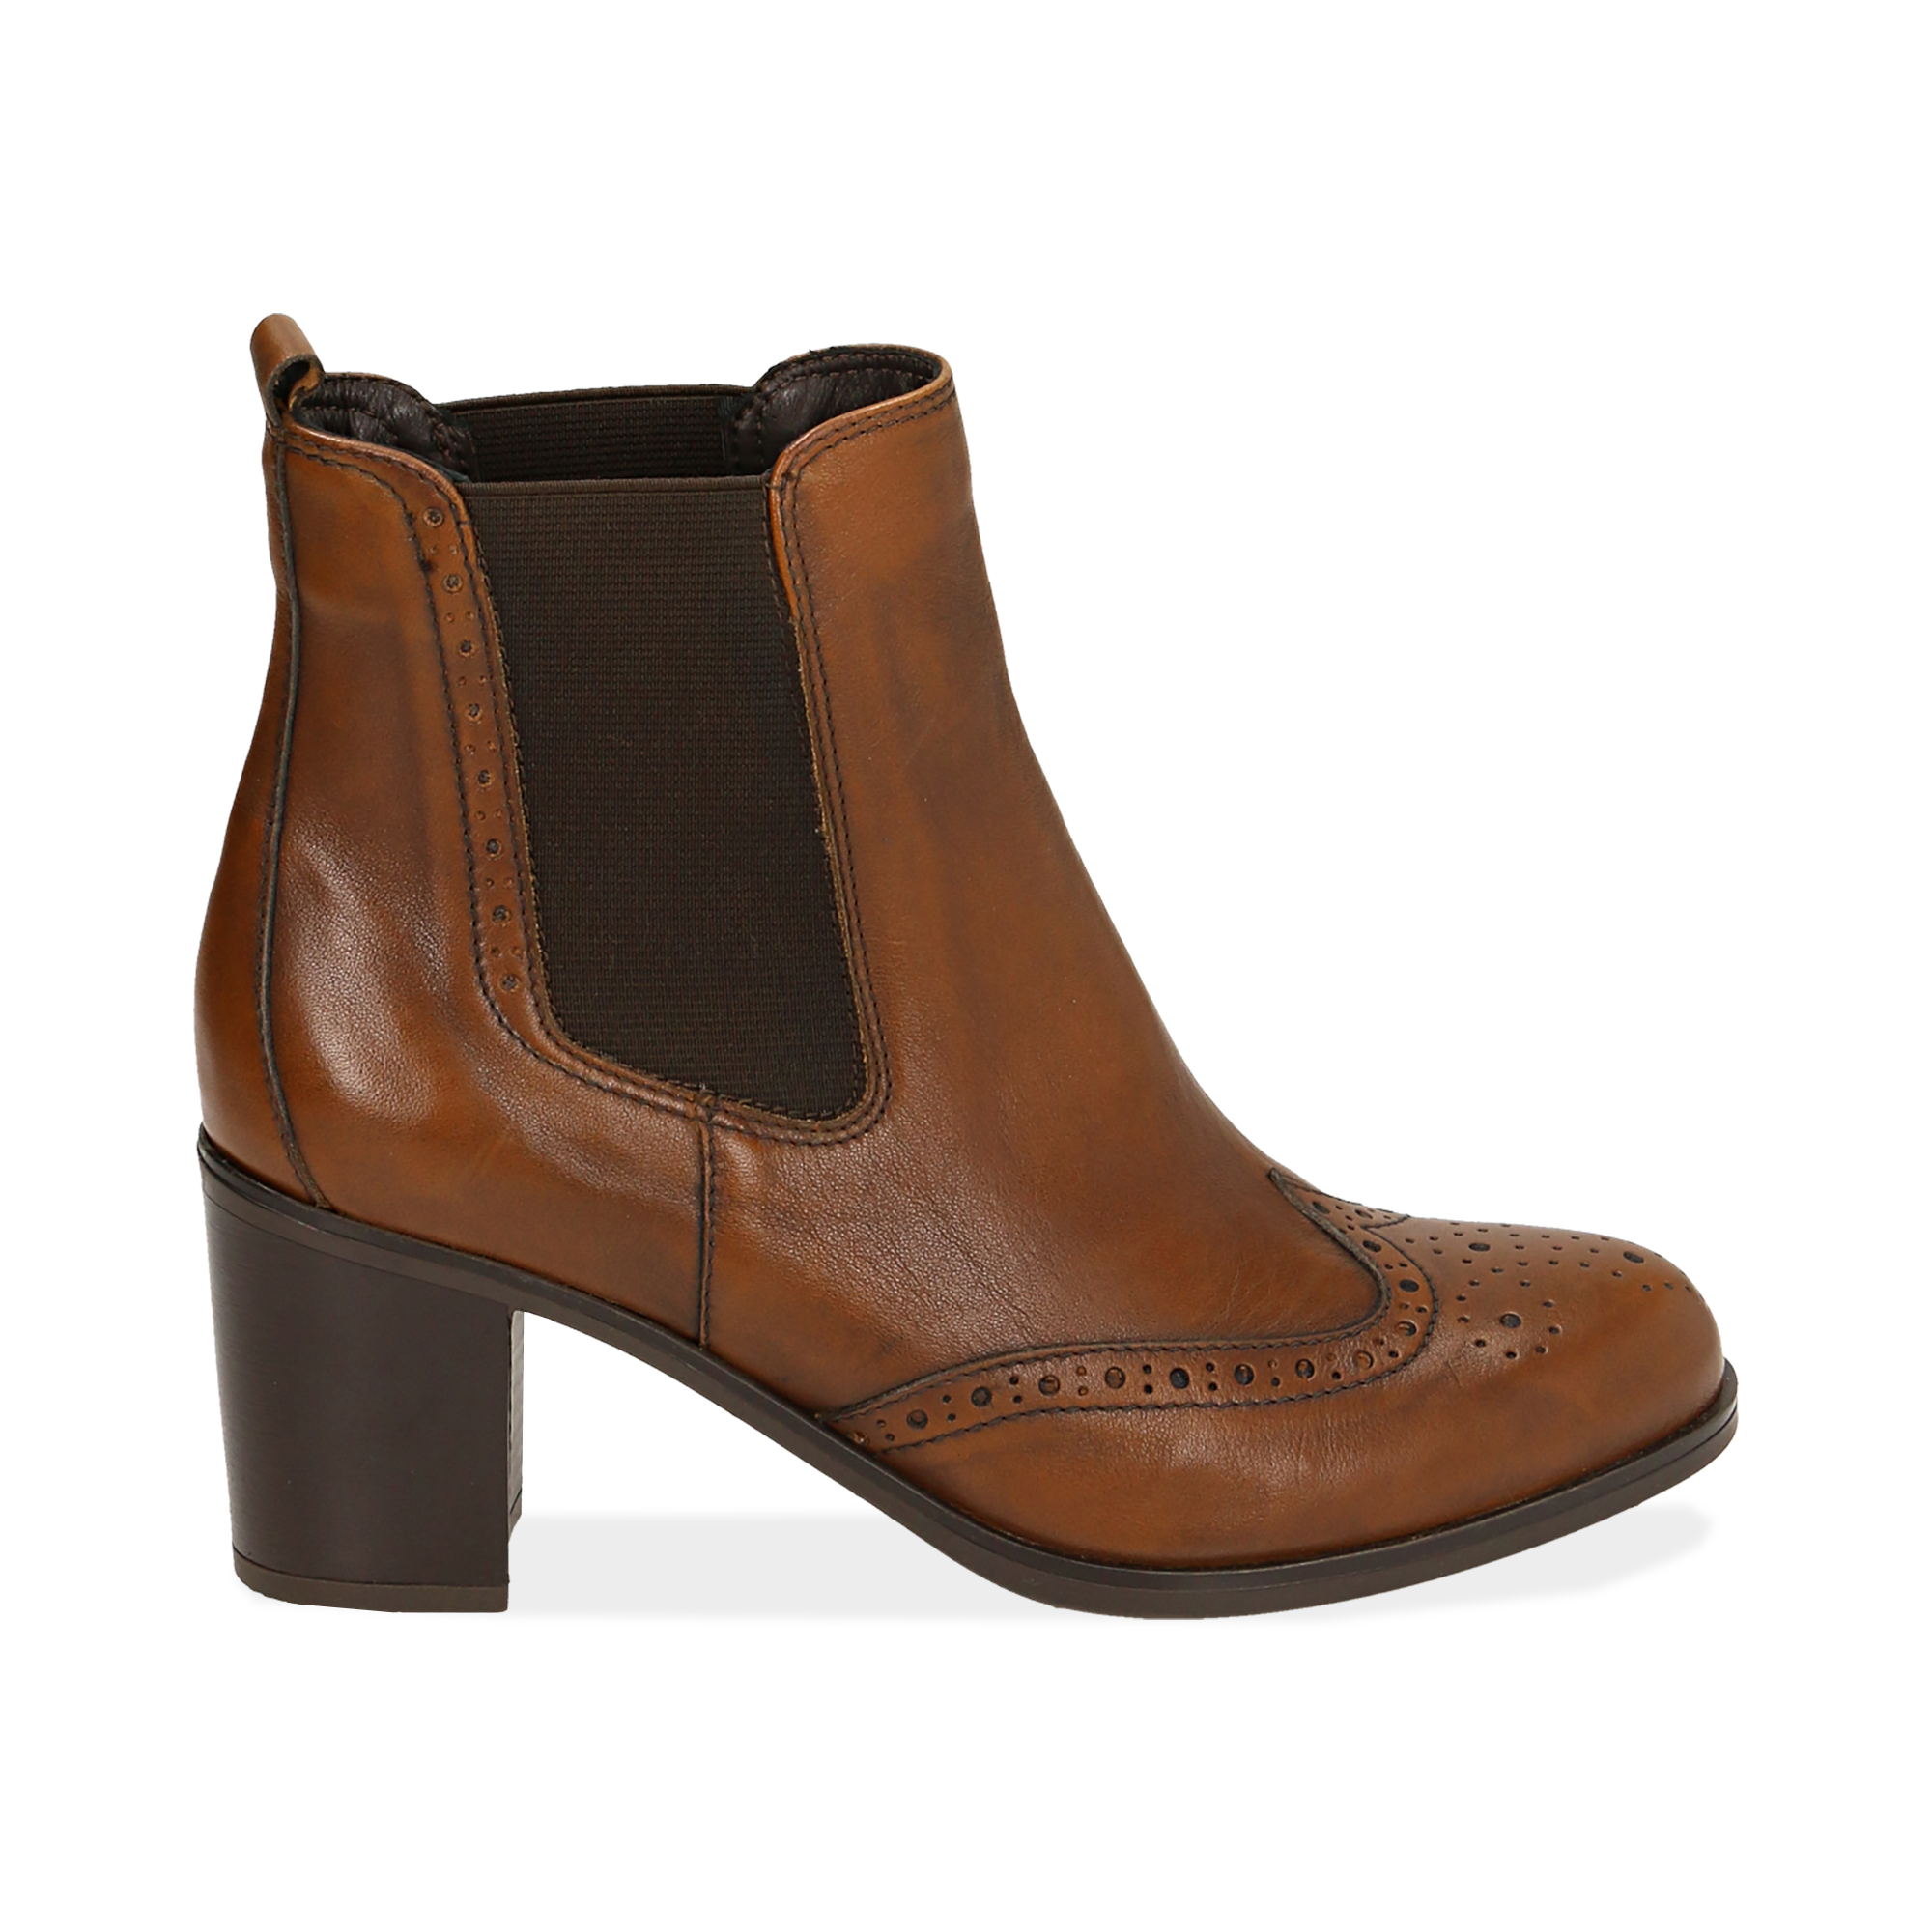 Ankle boots cuoio in pelle, tacco 7,50 cm